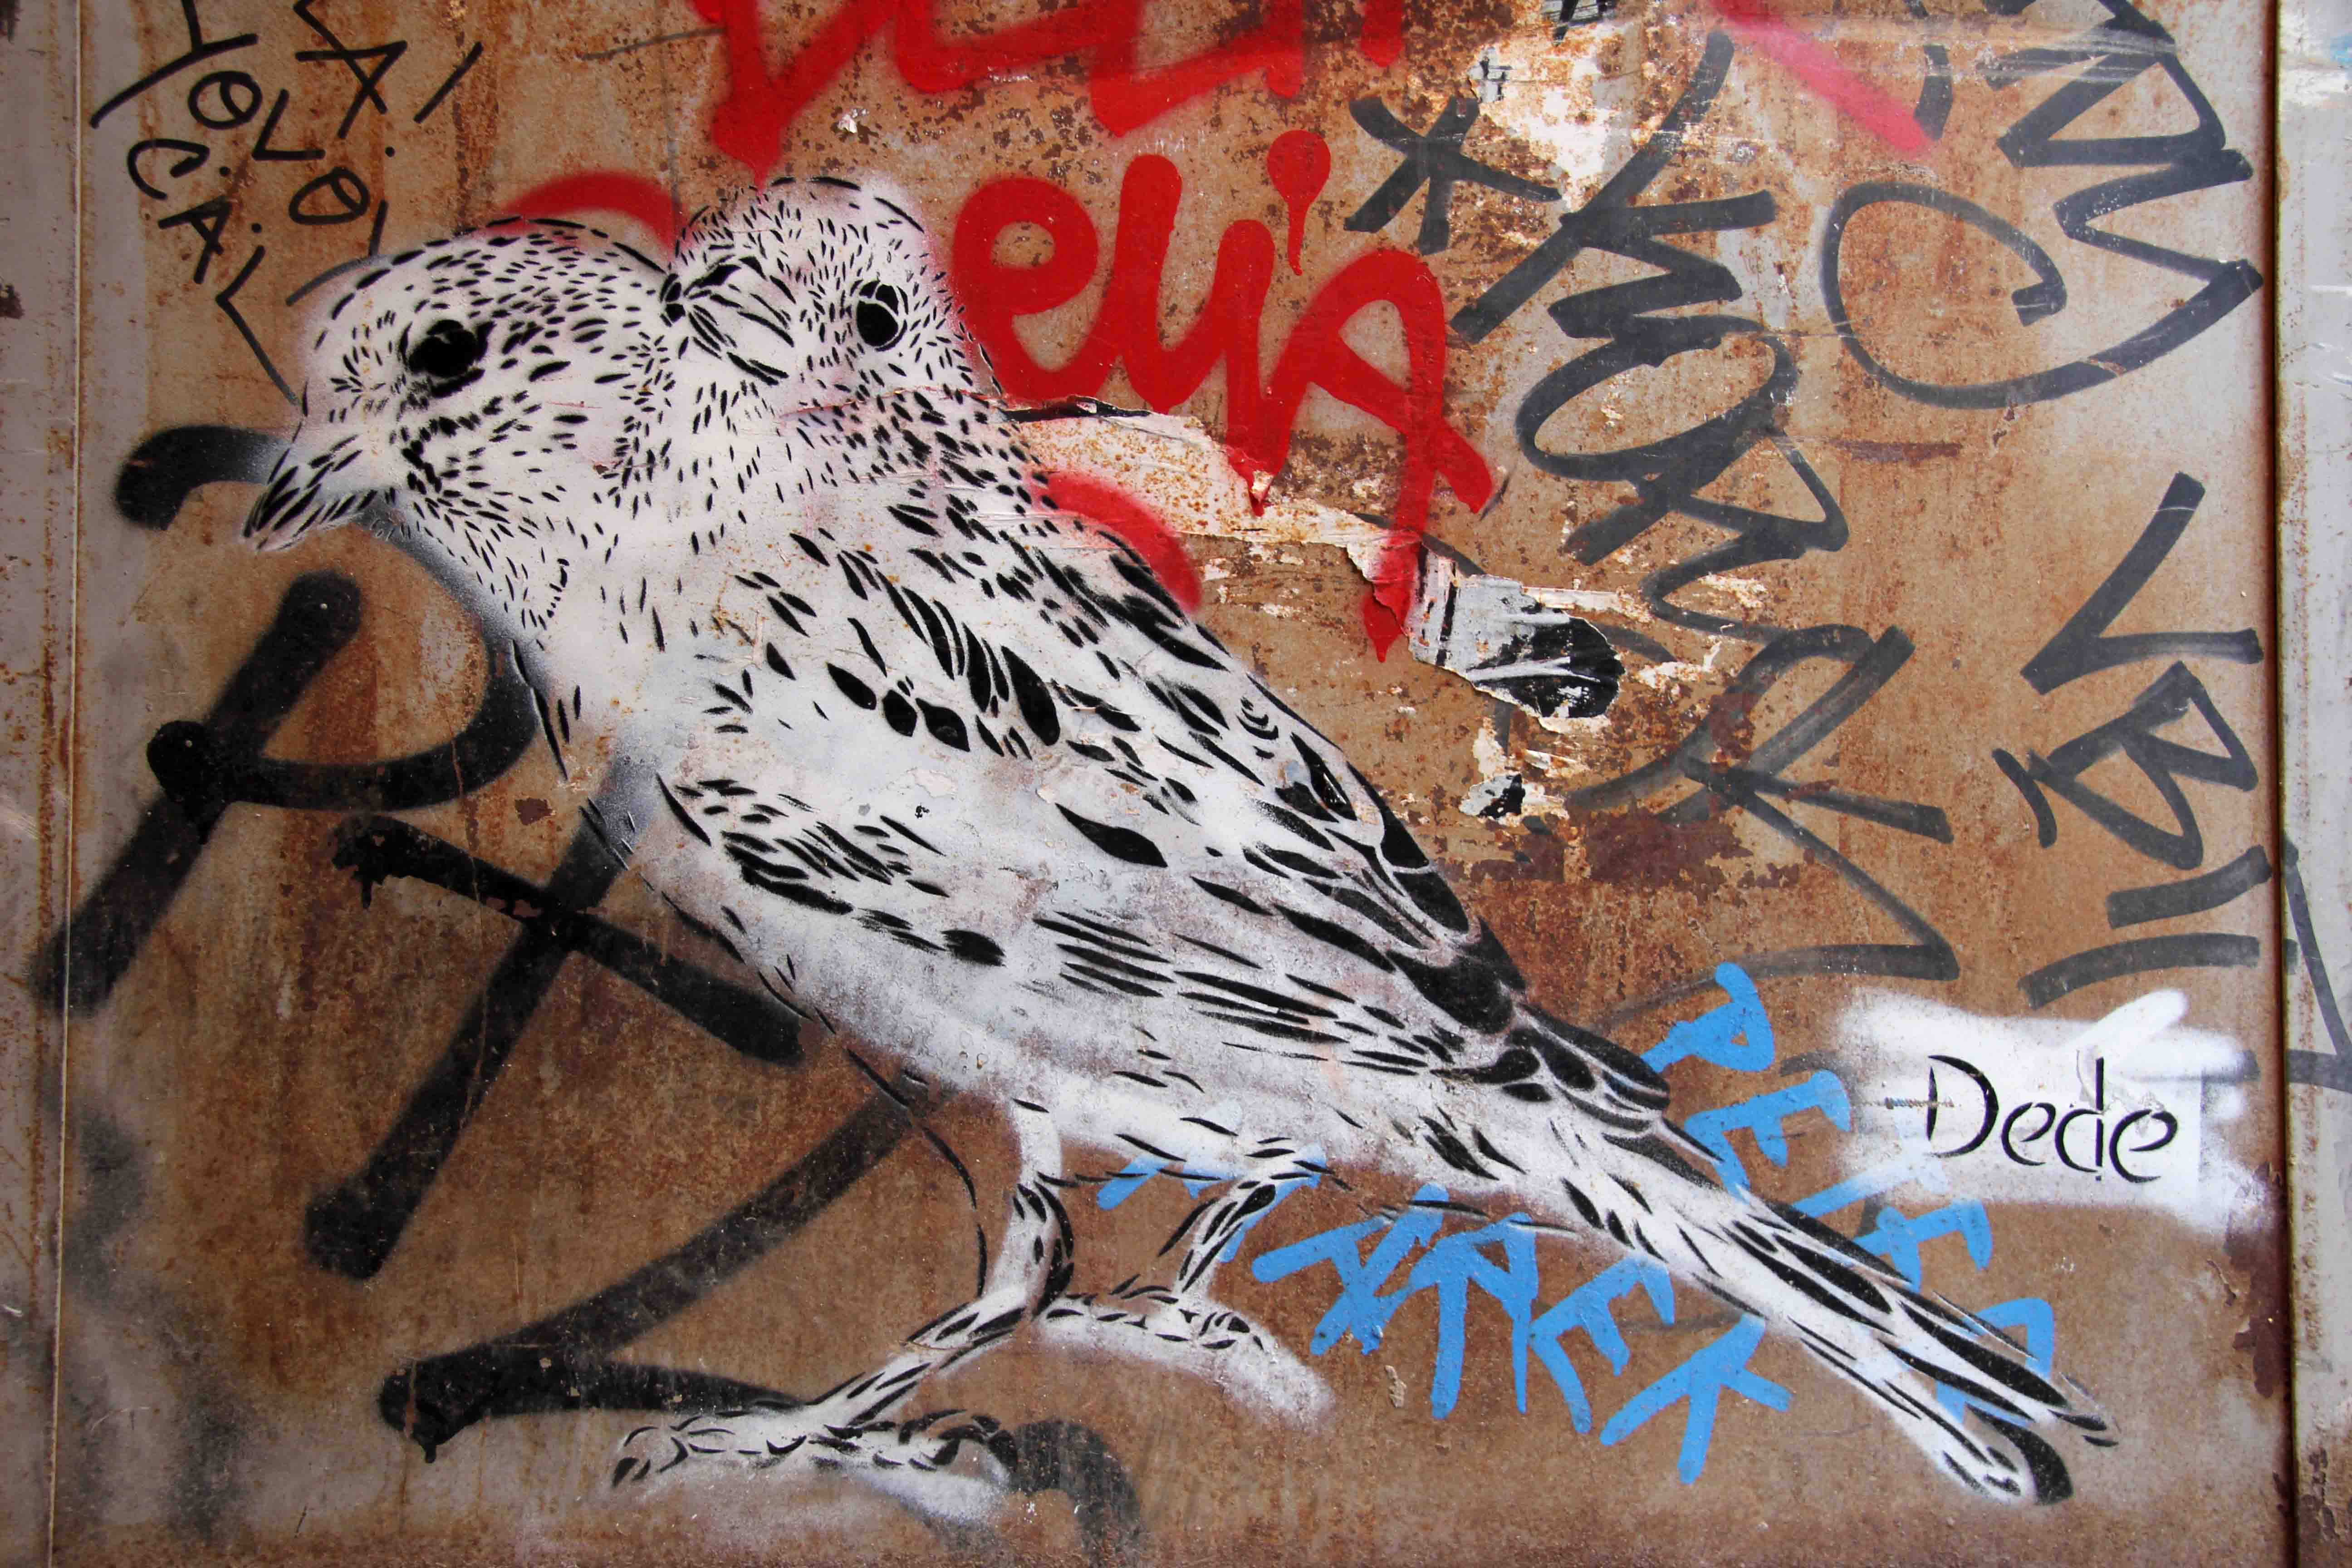 Siamese Birds (Wild Life) - Street Art by Dede in Berlin